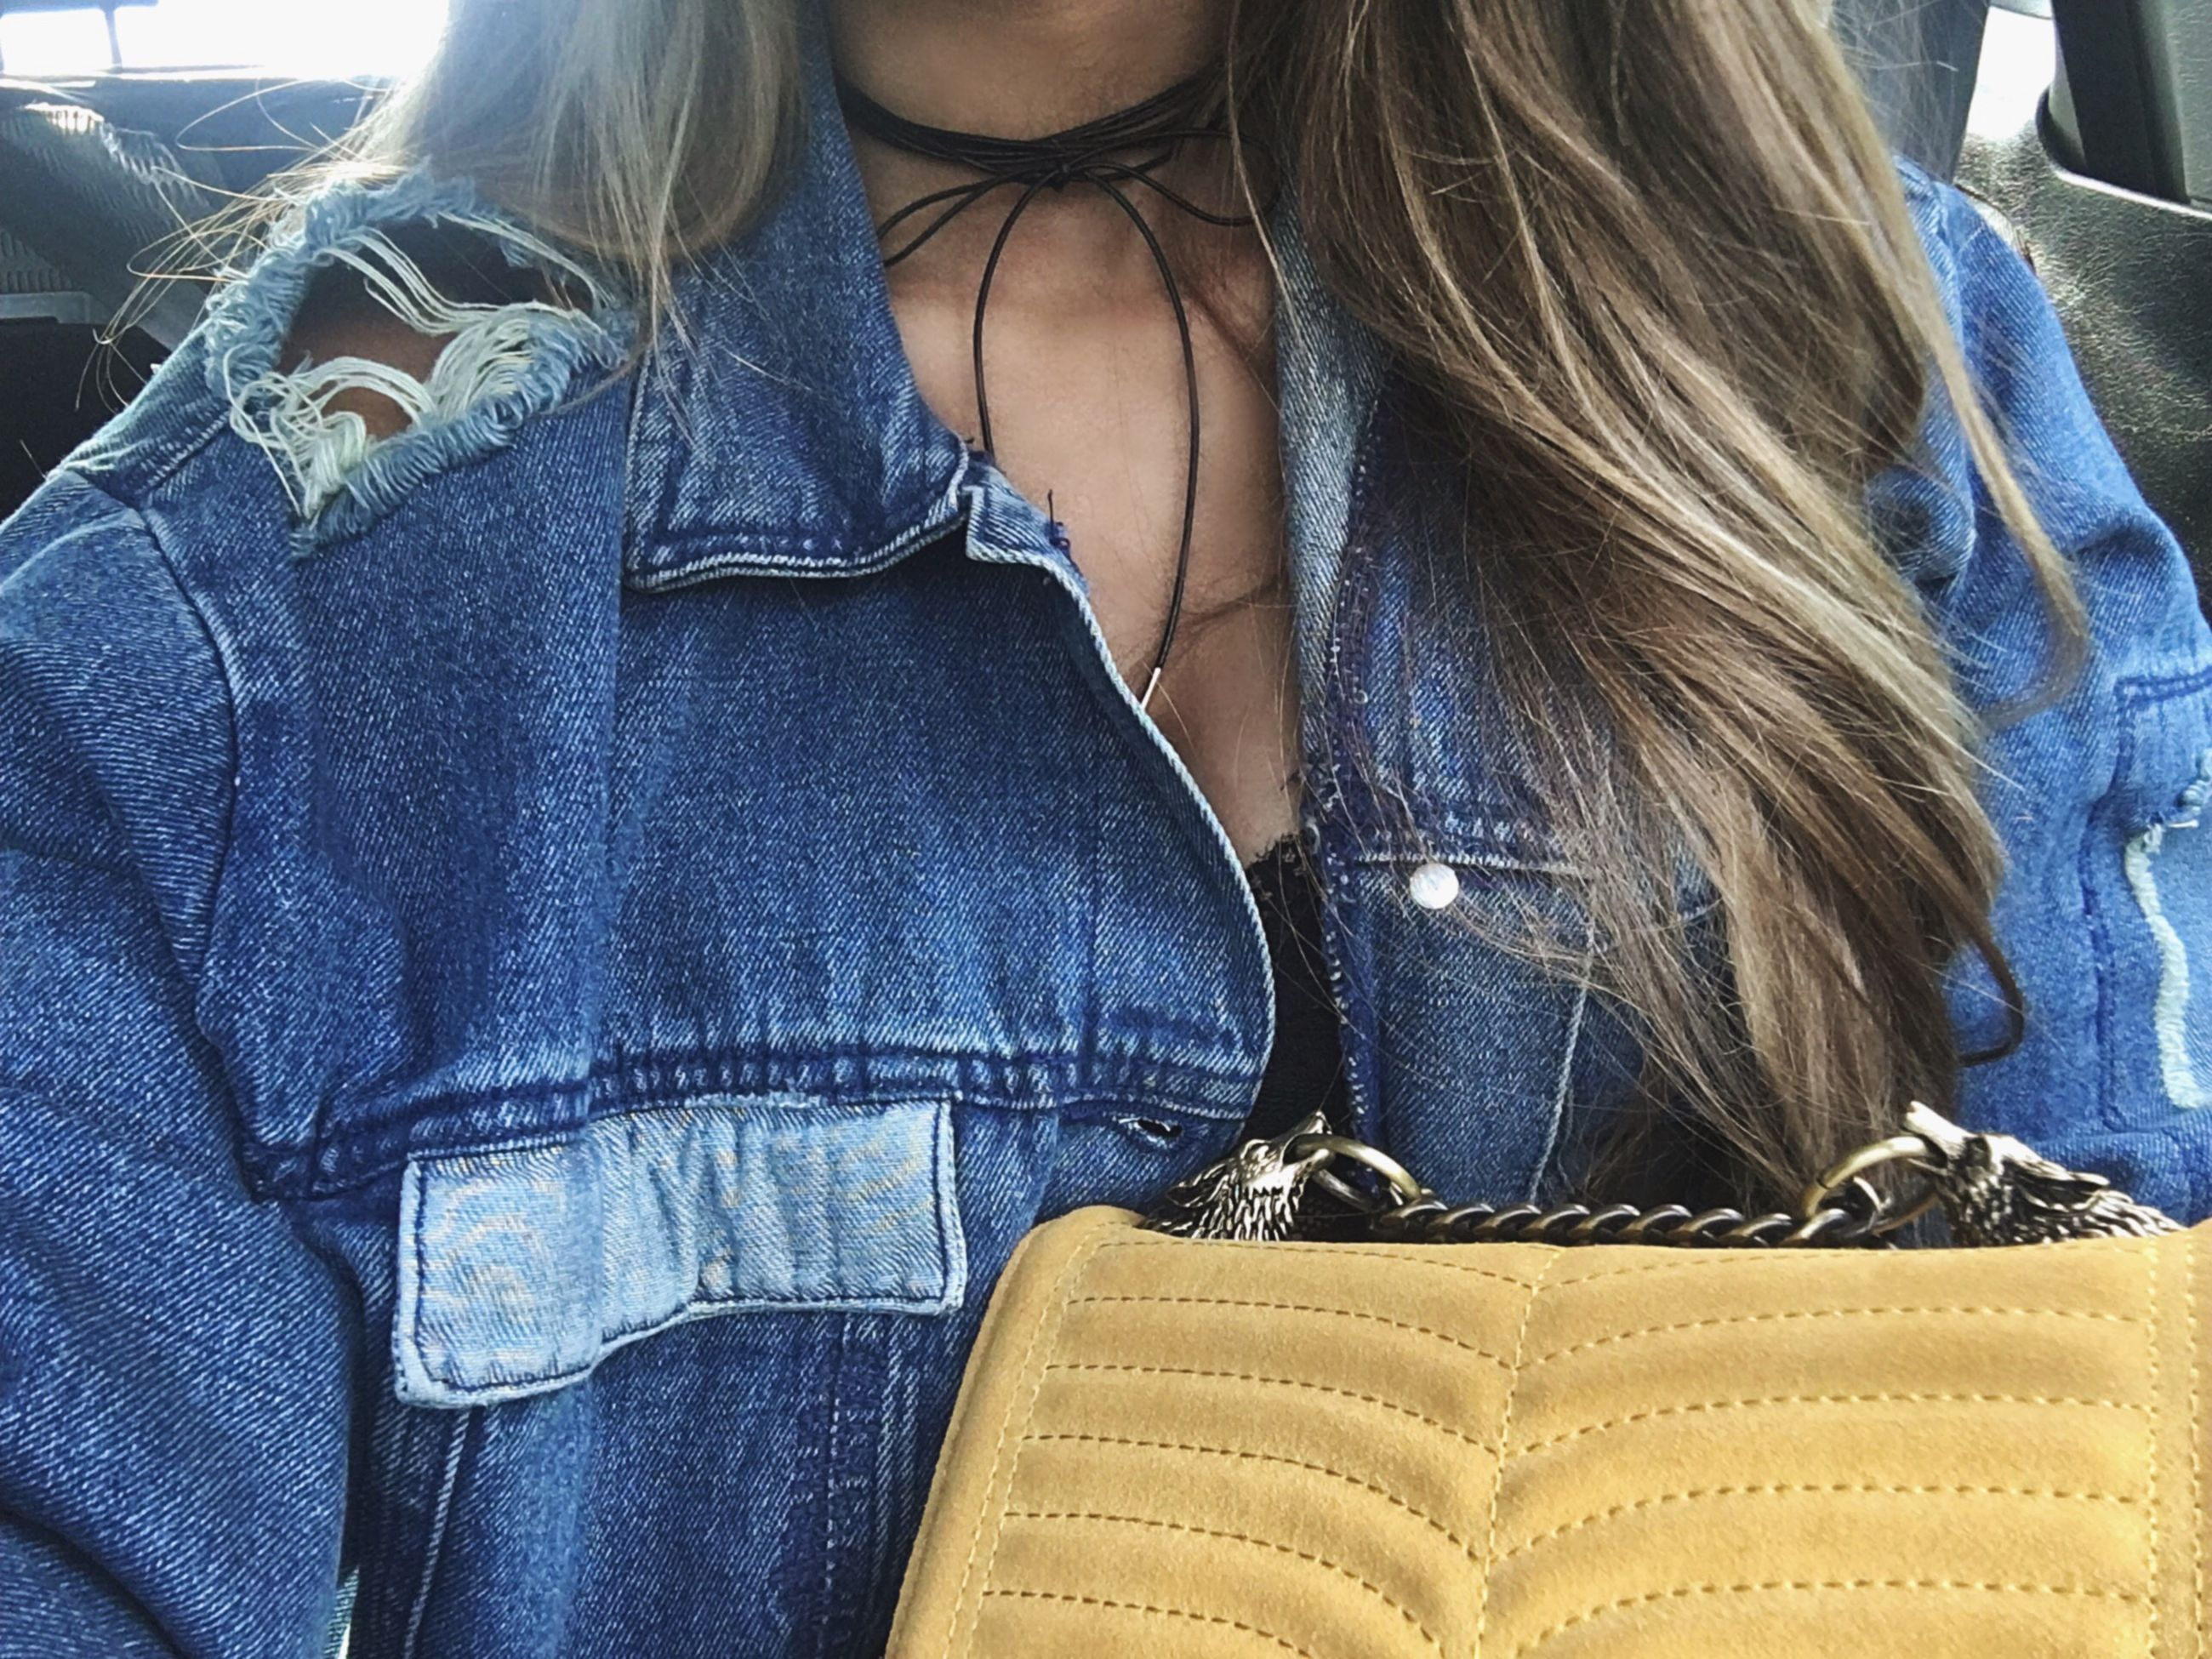 midsection, jeans, close-up, denim, casual clothing, jacket, front view, young adult, mid section, clothing, friendship, t-shirt, well-dressed, female